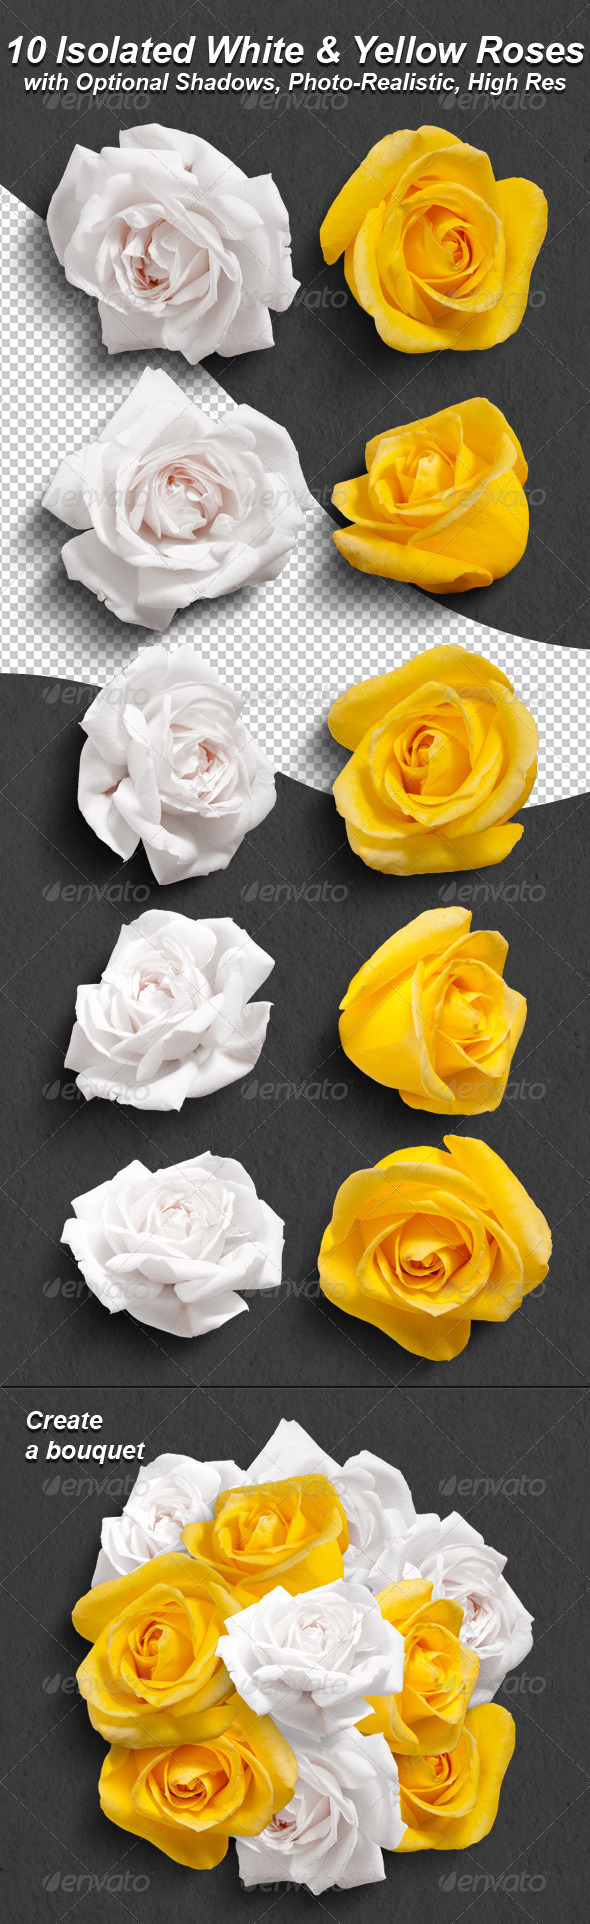 GraphicRiver 10 Photo-Realistic Isolated White and Yellow Roses 5044365